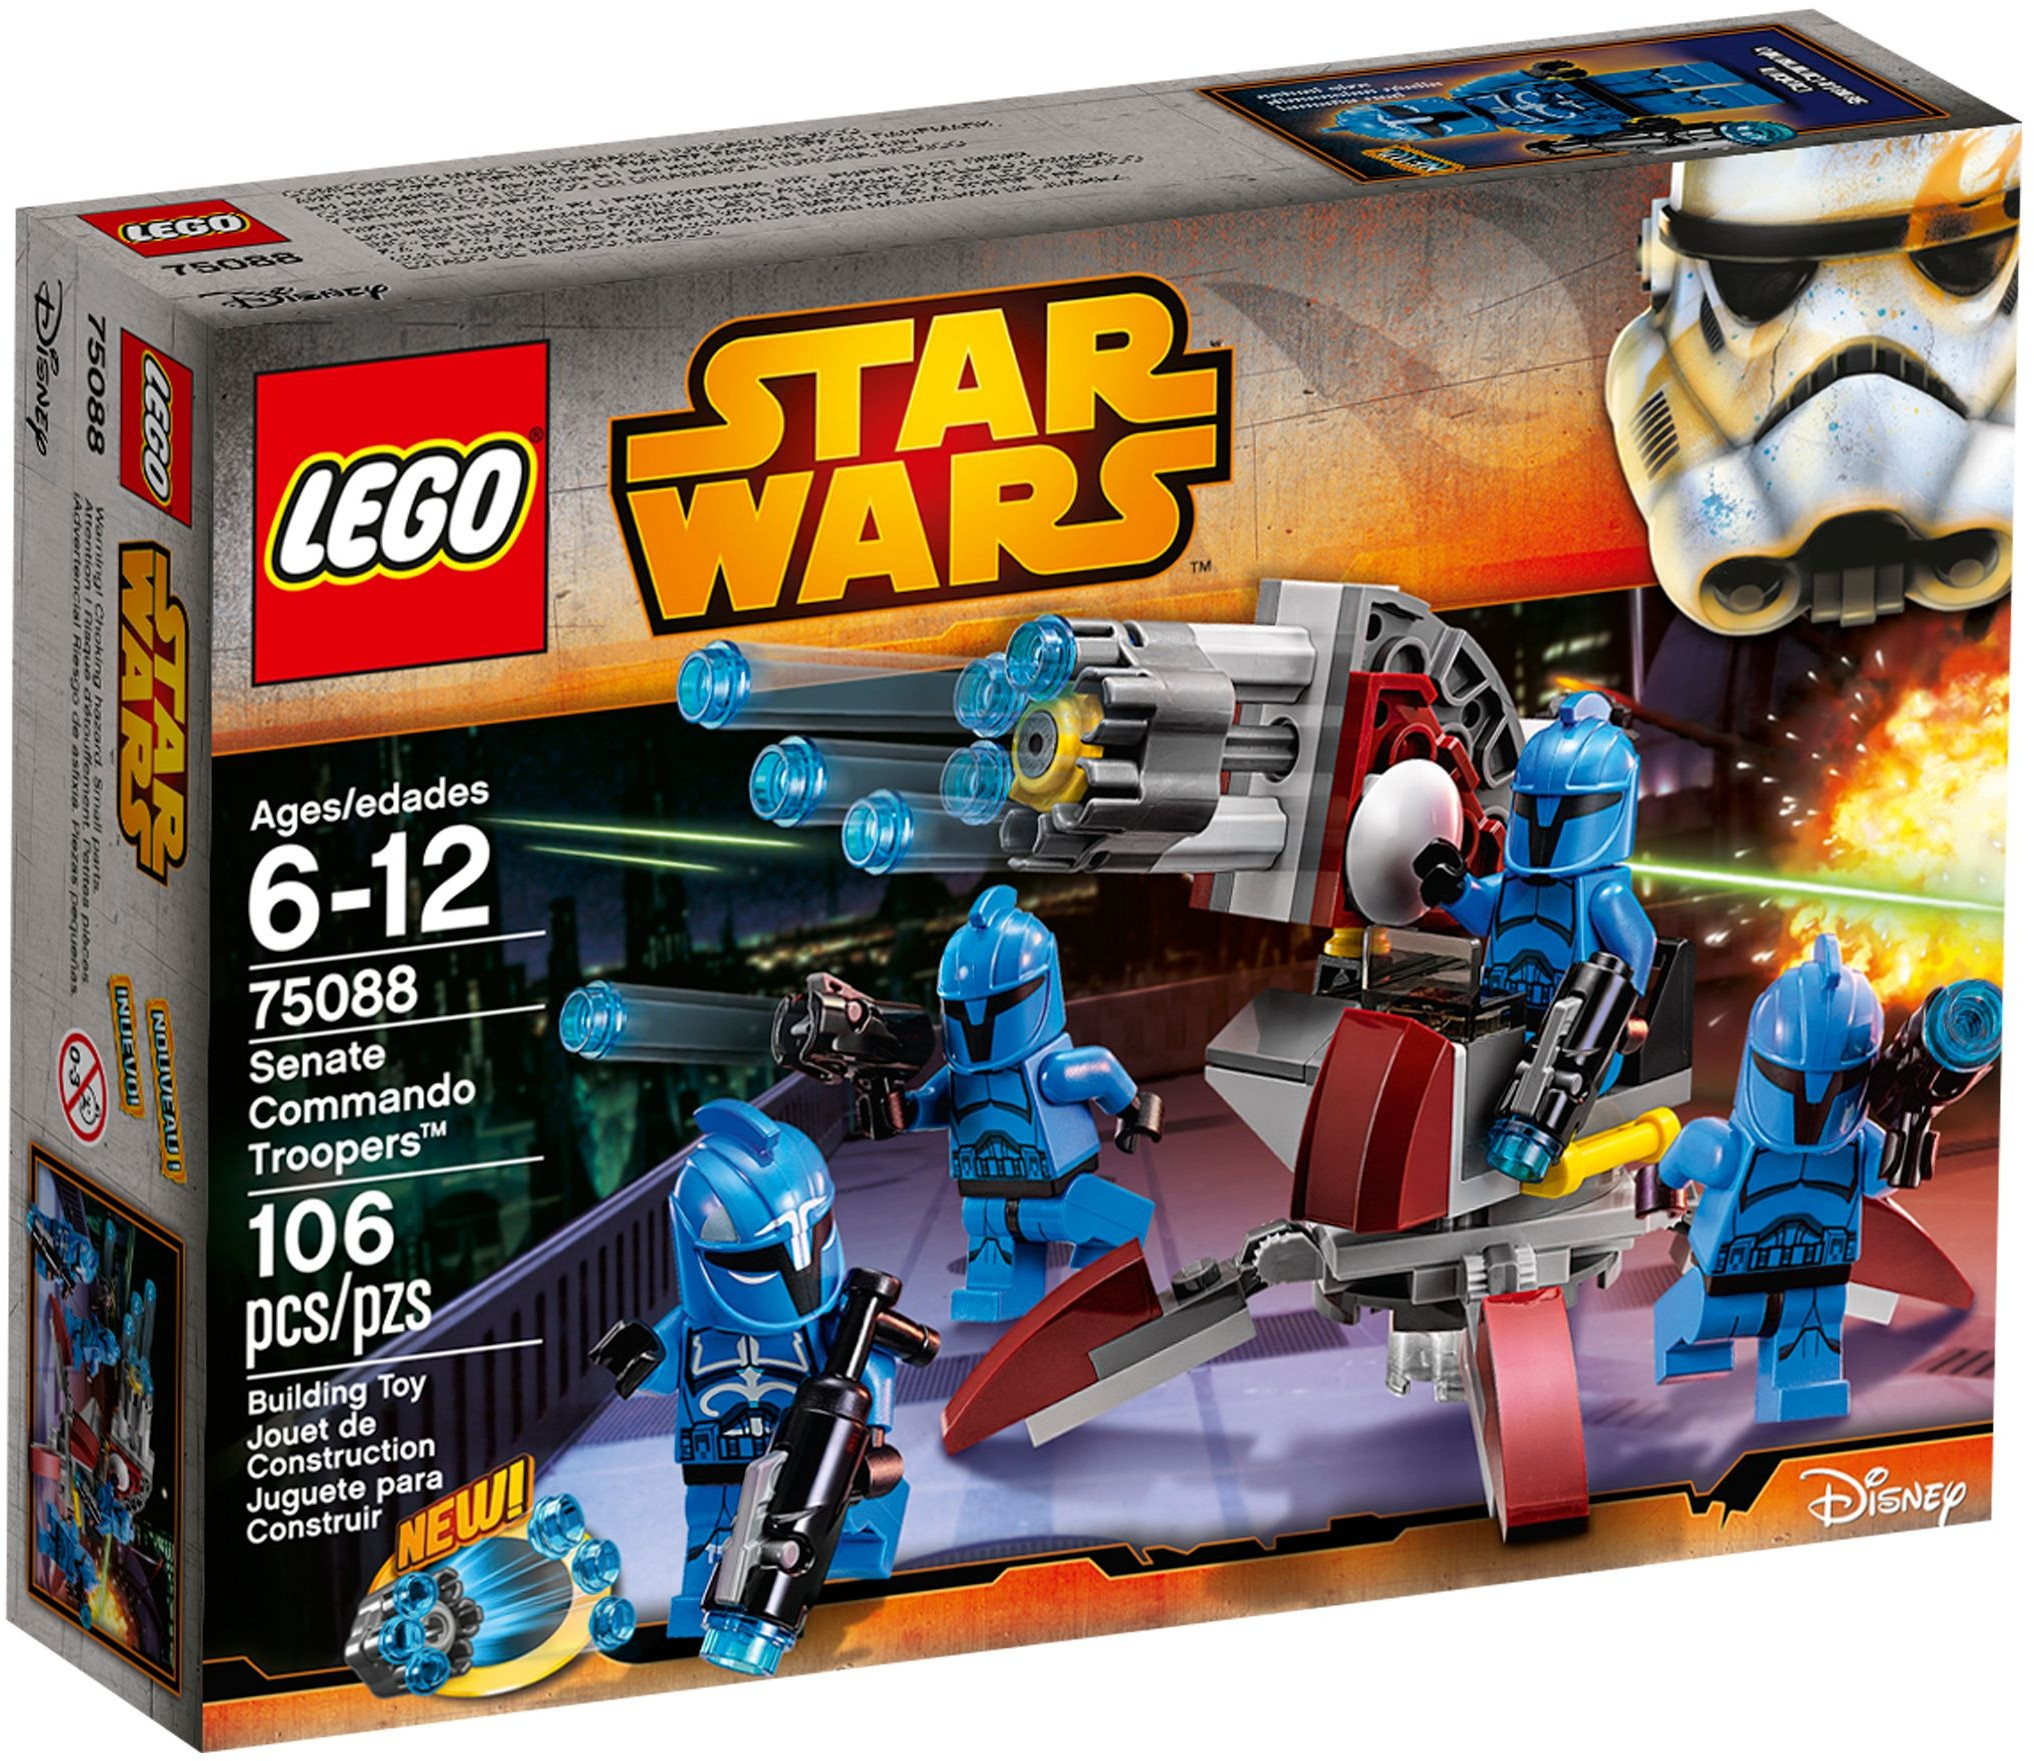 LEGO 75088 - Star Wars - Senate Commando Troopers